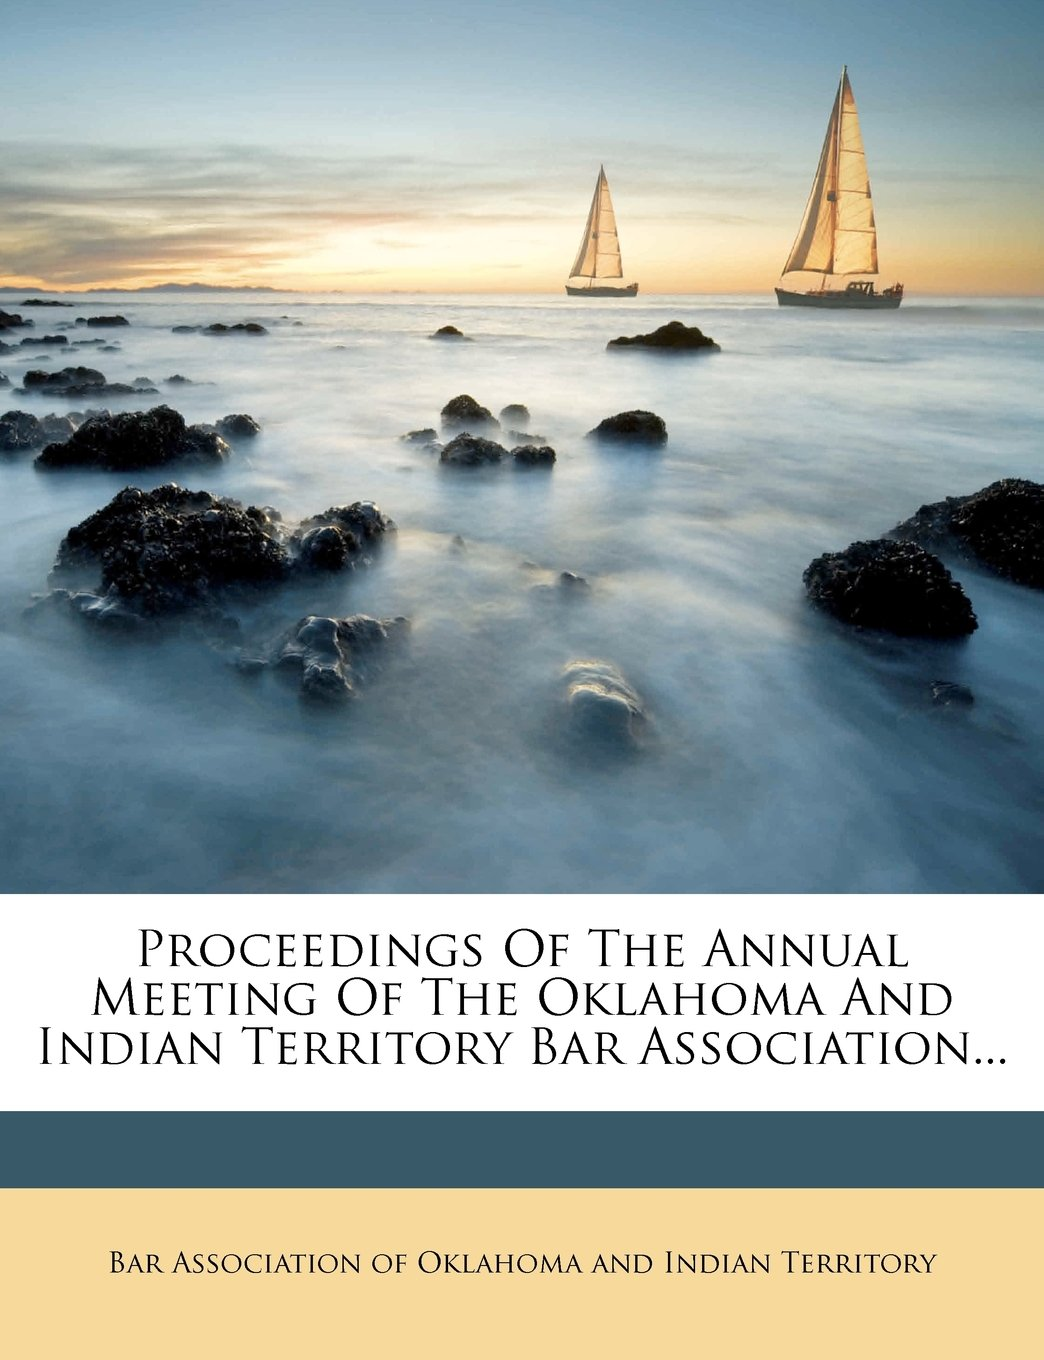 Download Proceedings Of The Annual Meeting Of The Oklahoma And Indian Territory Bar Association... Text fb2 book